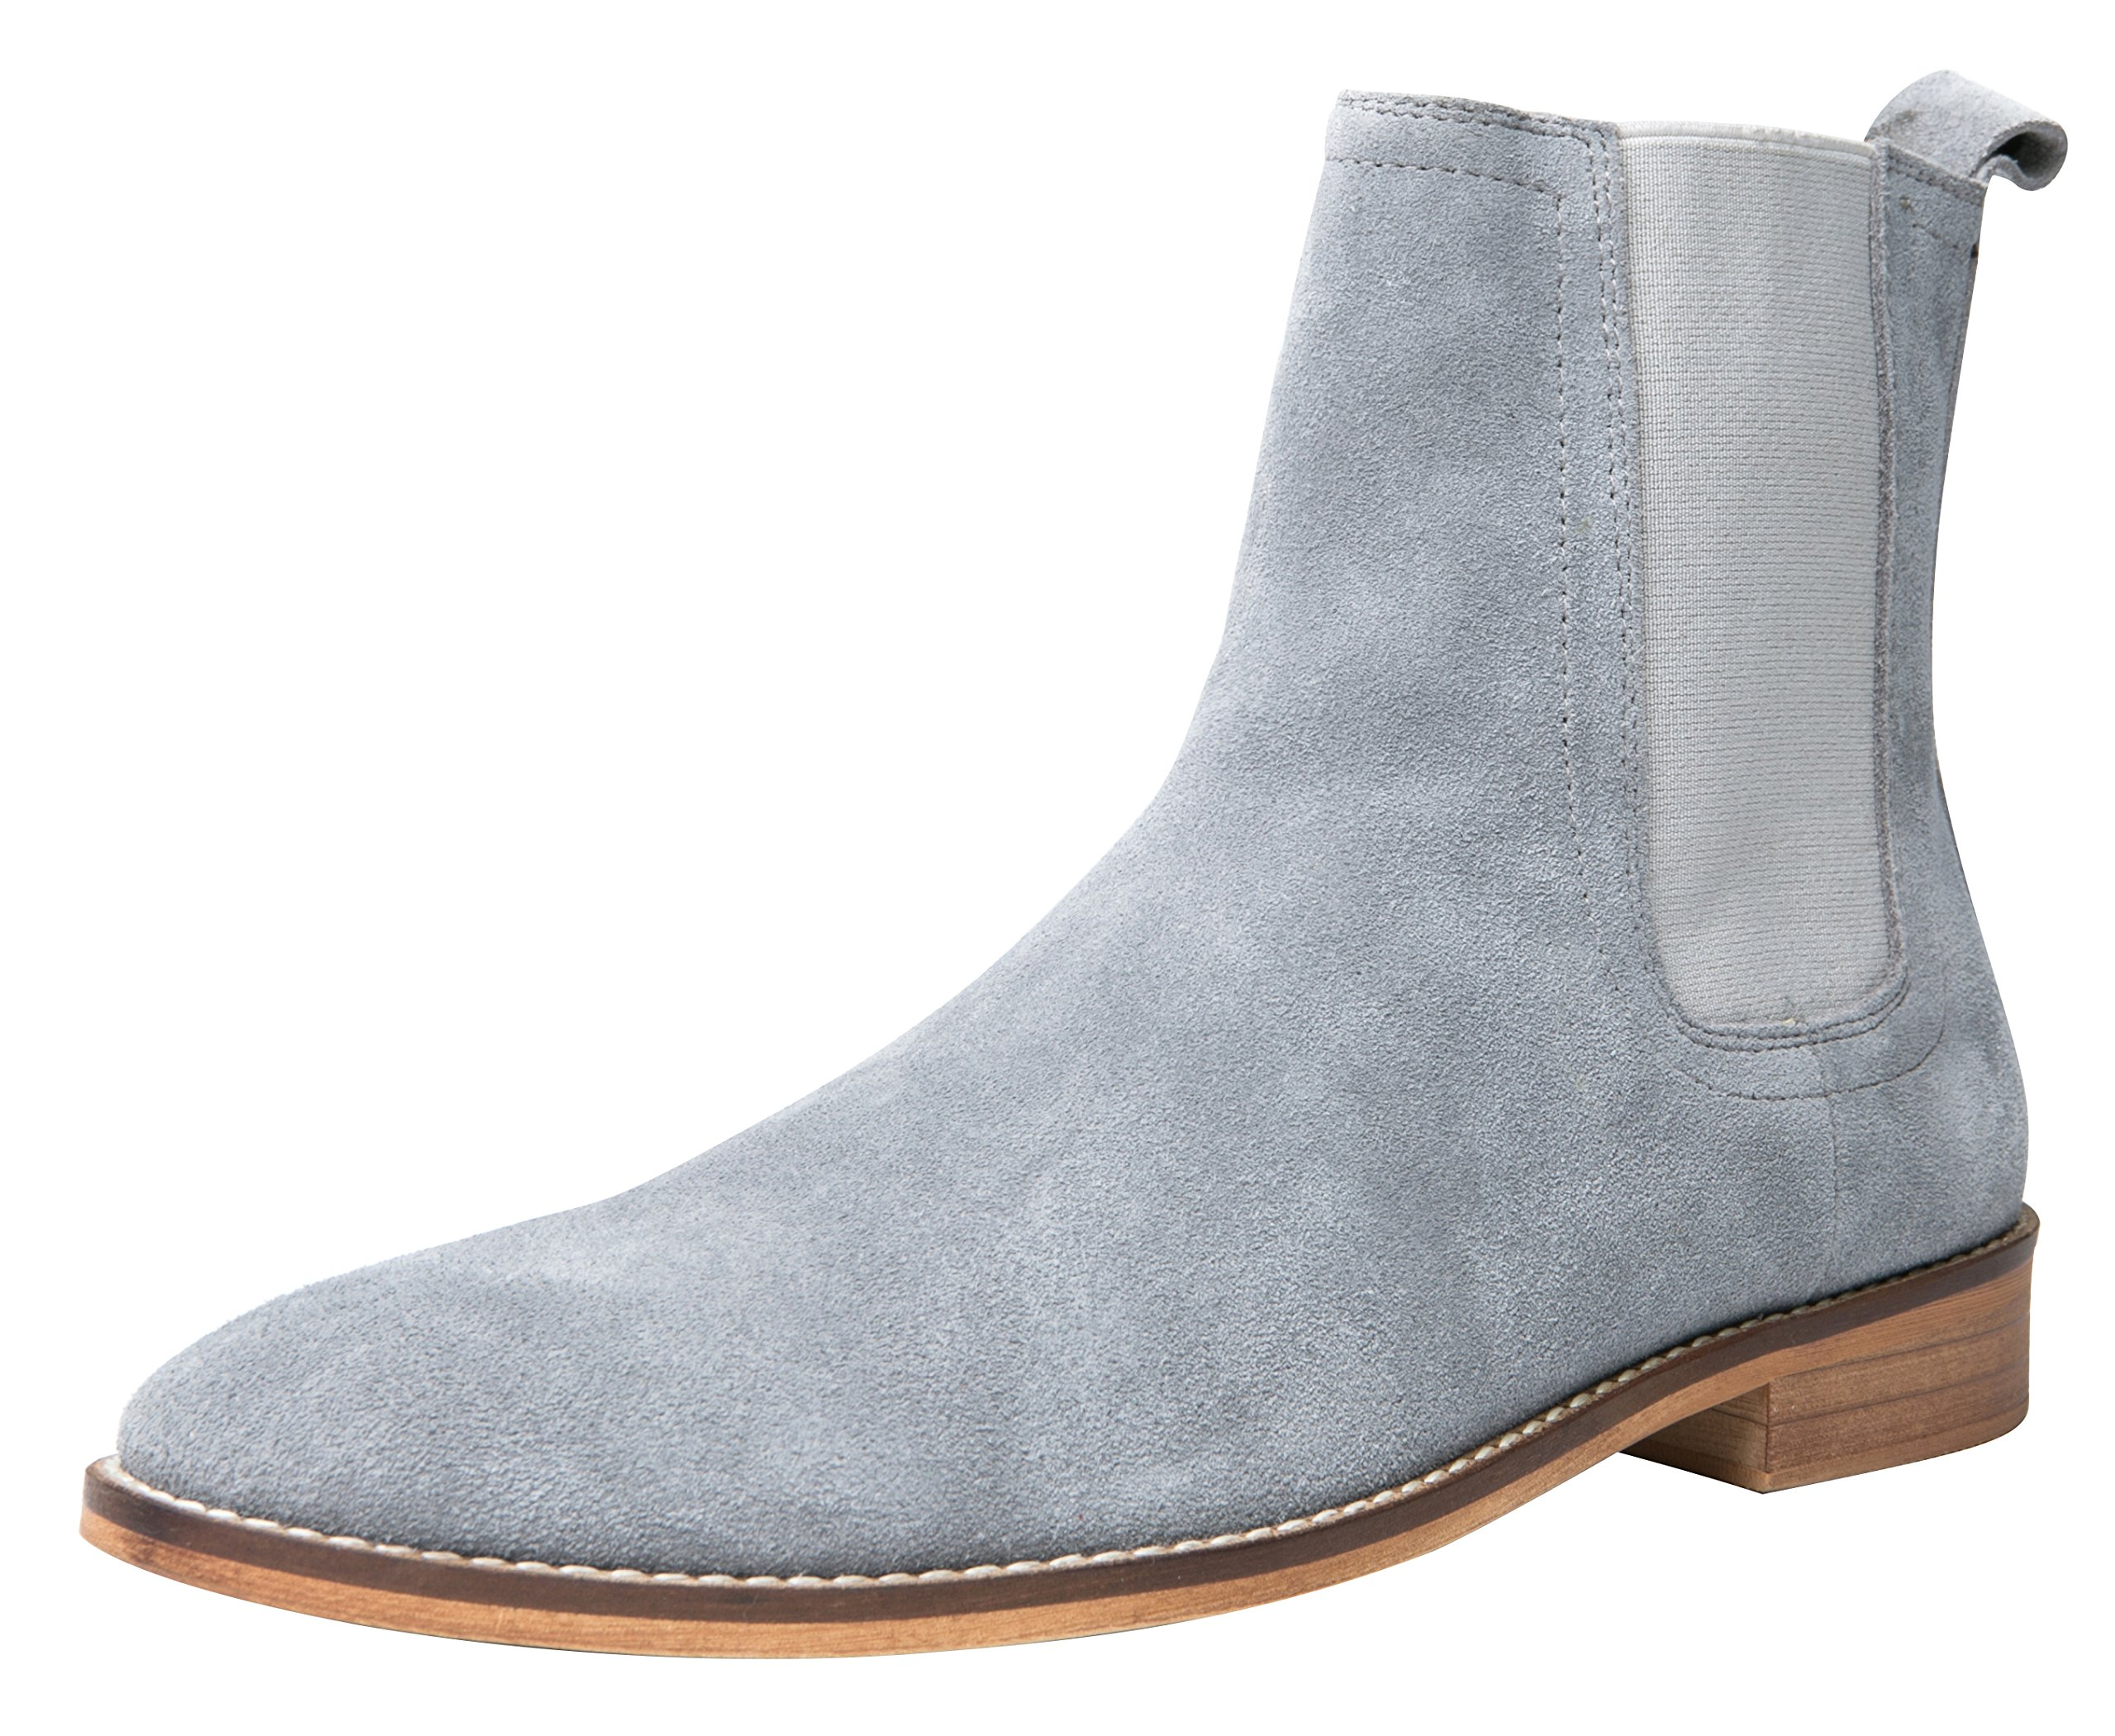 Santimon Chelsea Boots Men Suede Casual Dress Boots Ankle Boots Formal Shoes by Black Brown Grey Grey 11 D(M) US